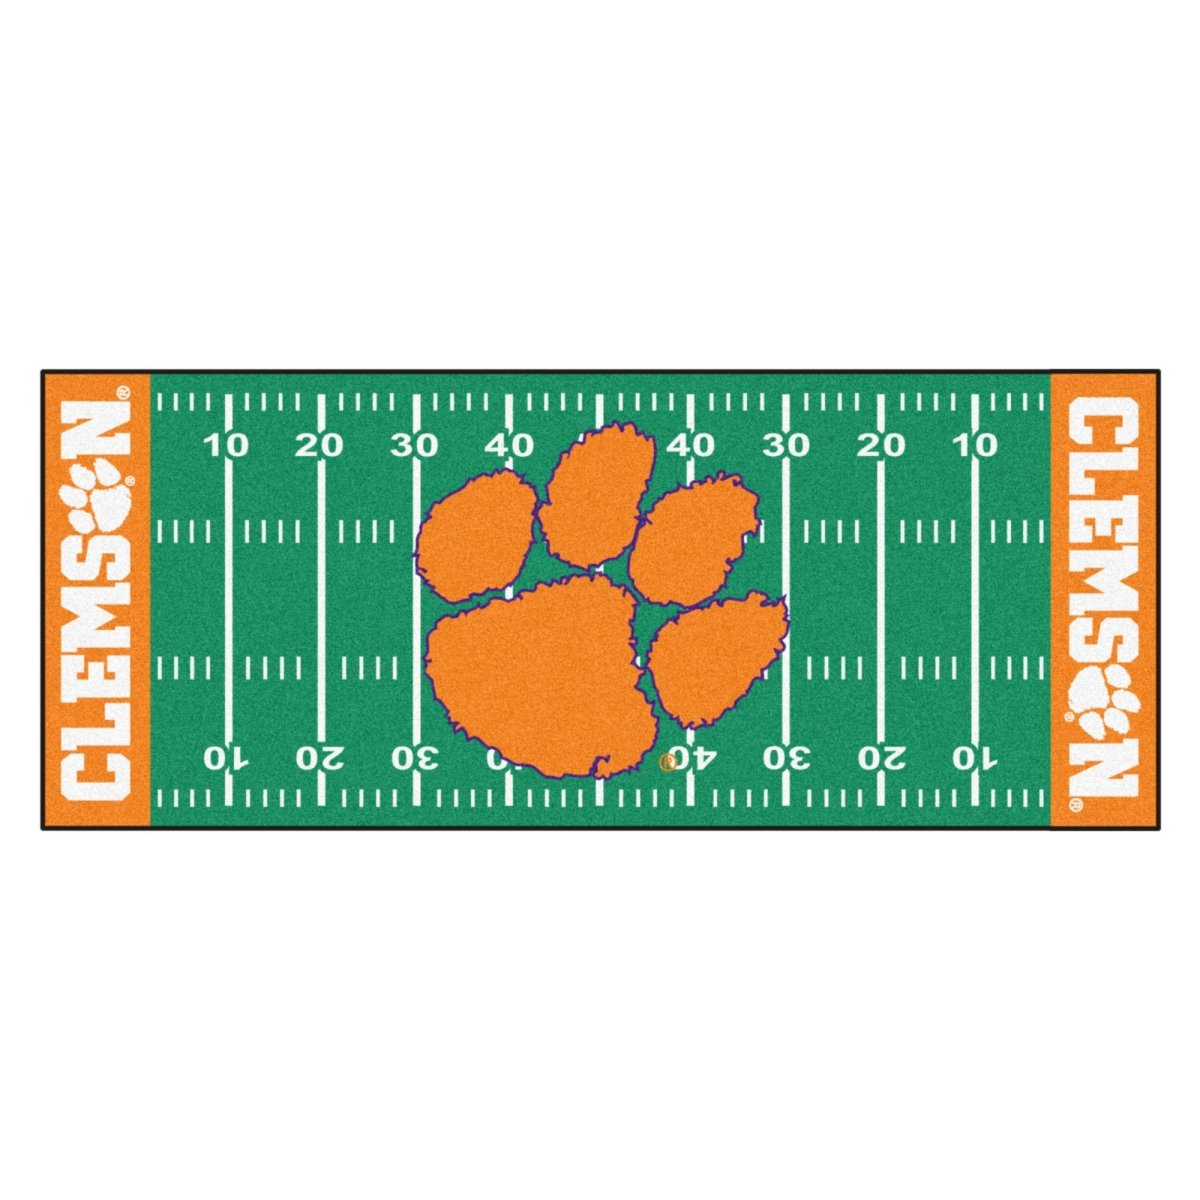 Fanmats Clemson Tigers Football Field Runner - Mr. Knickerbocker